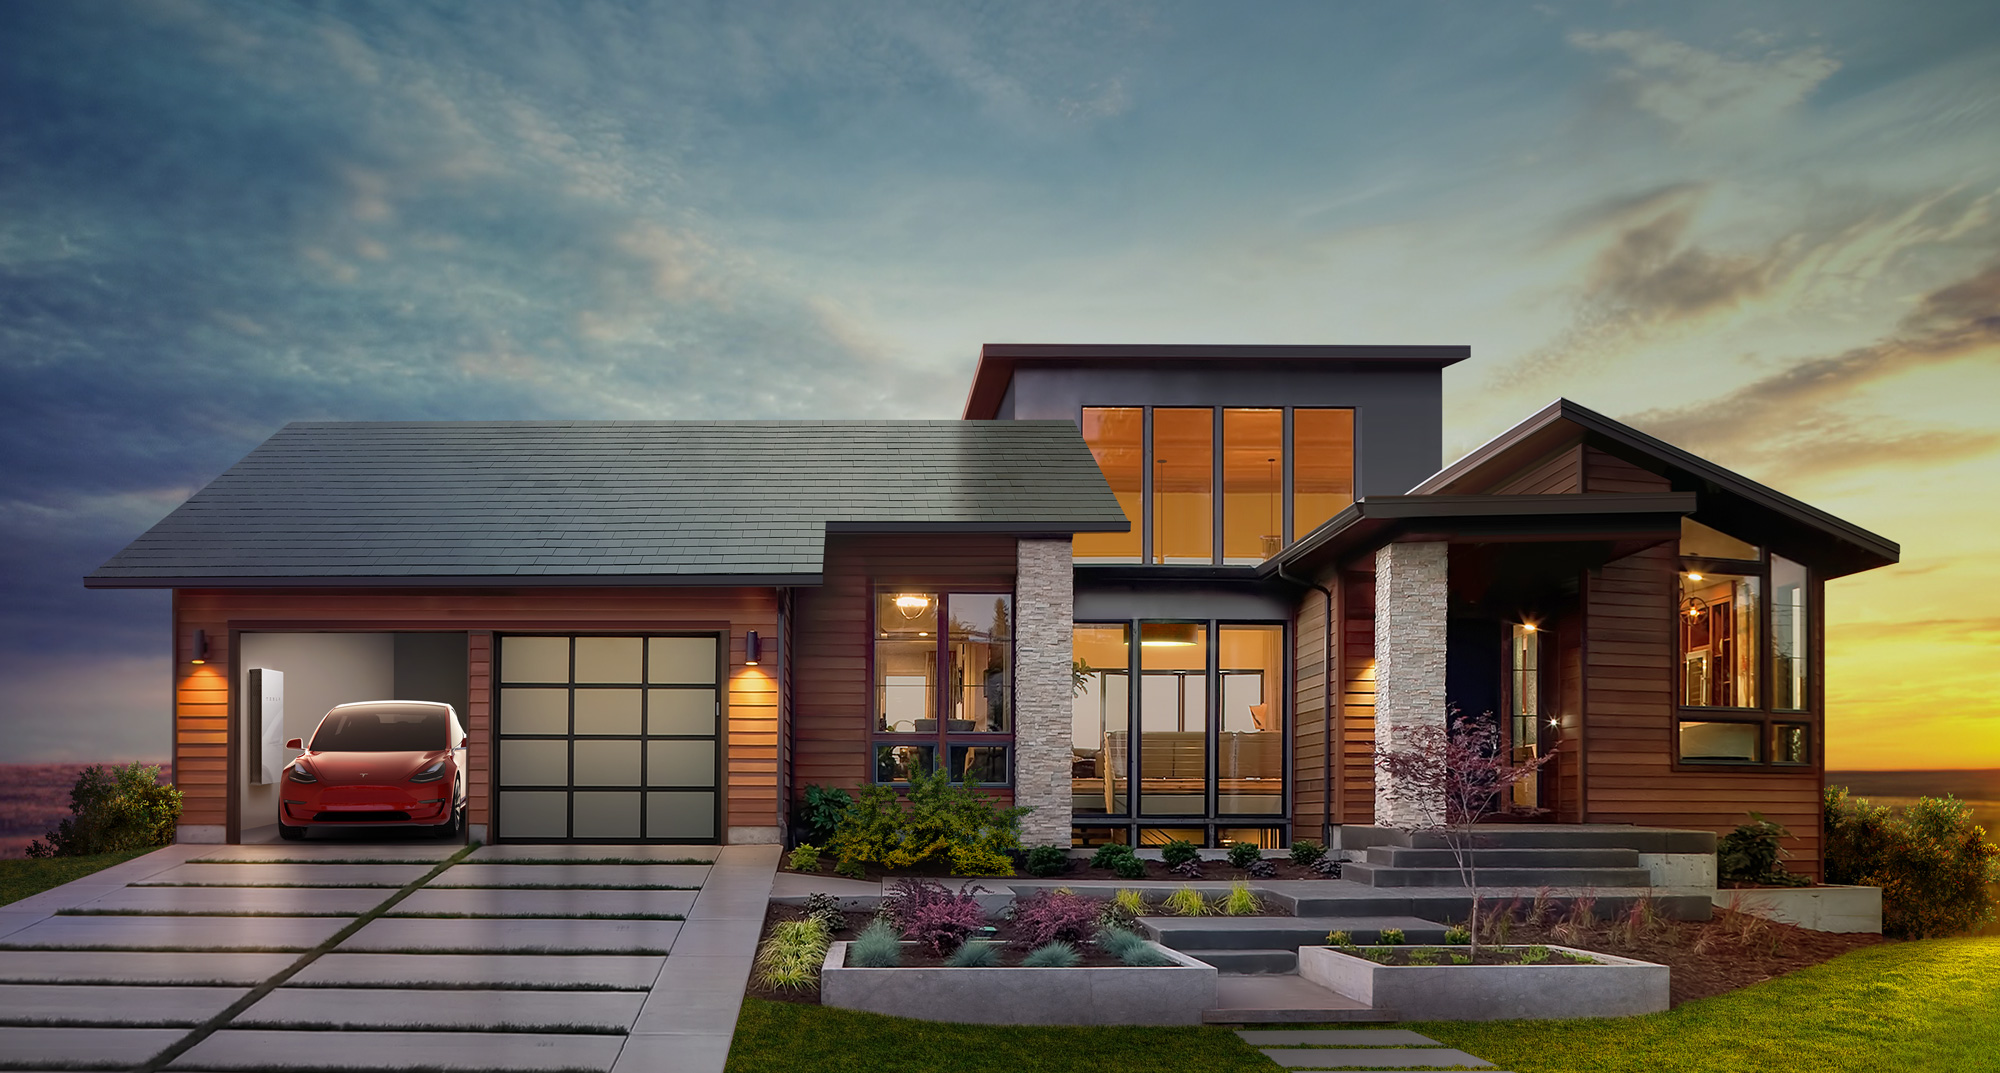 Tesla announces plans for solar roof, second-gen residential battery system